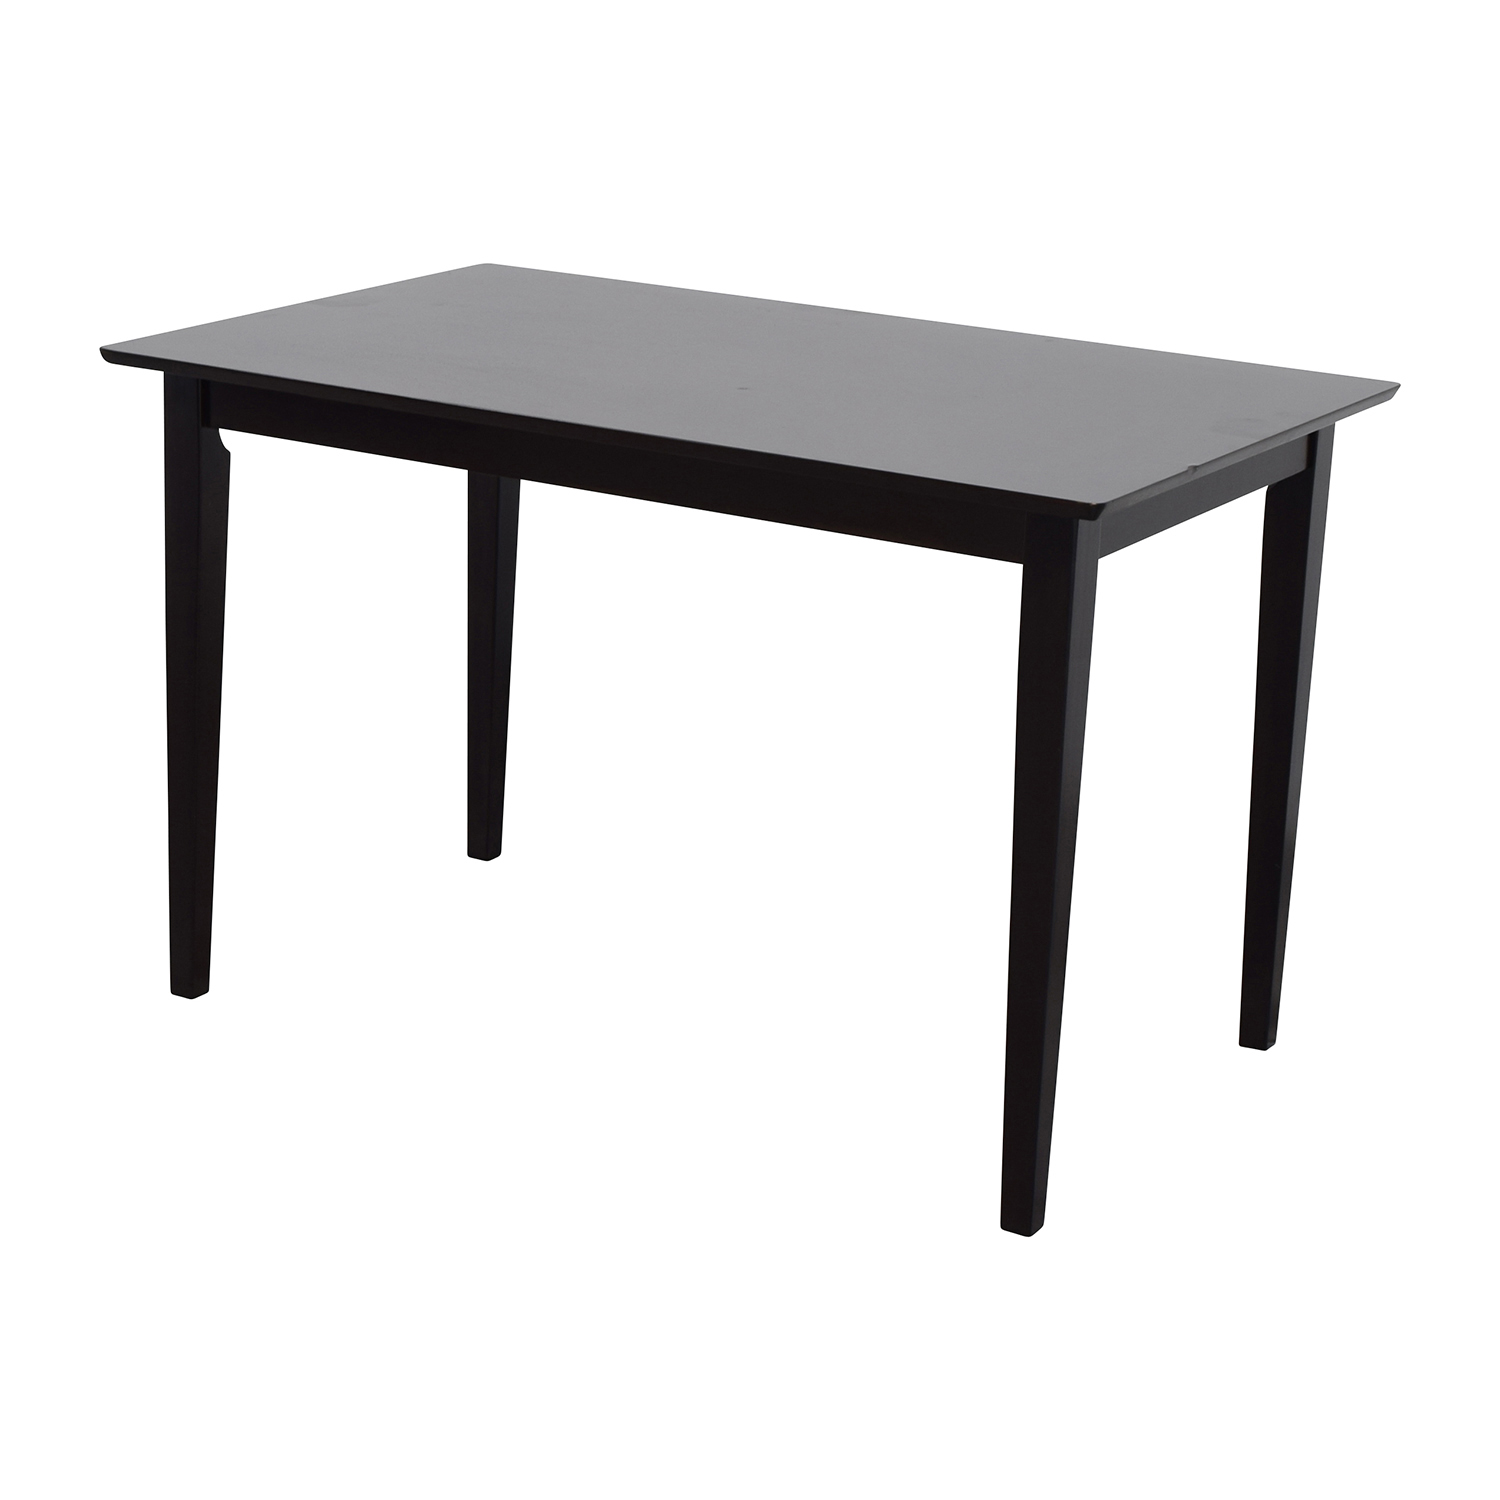 Coaster Home Furnishings Coaster Home Hyde Rectangular Casual Dining Leg Table discount